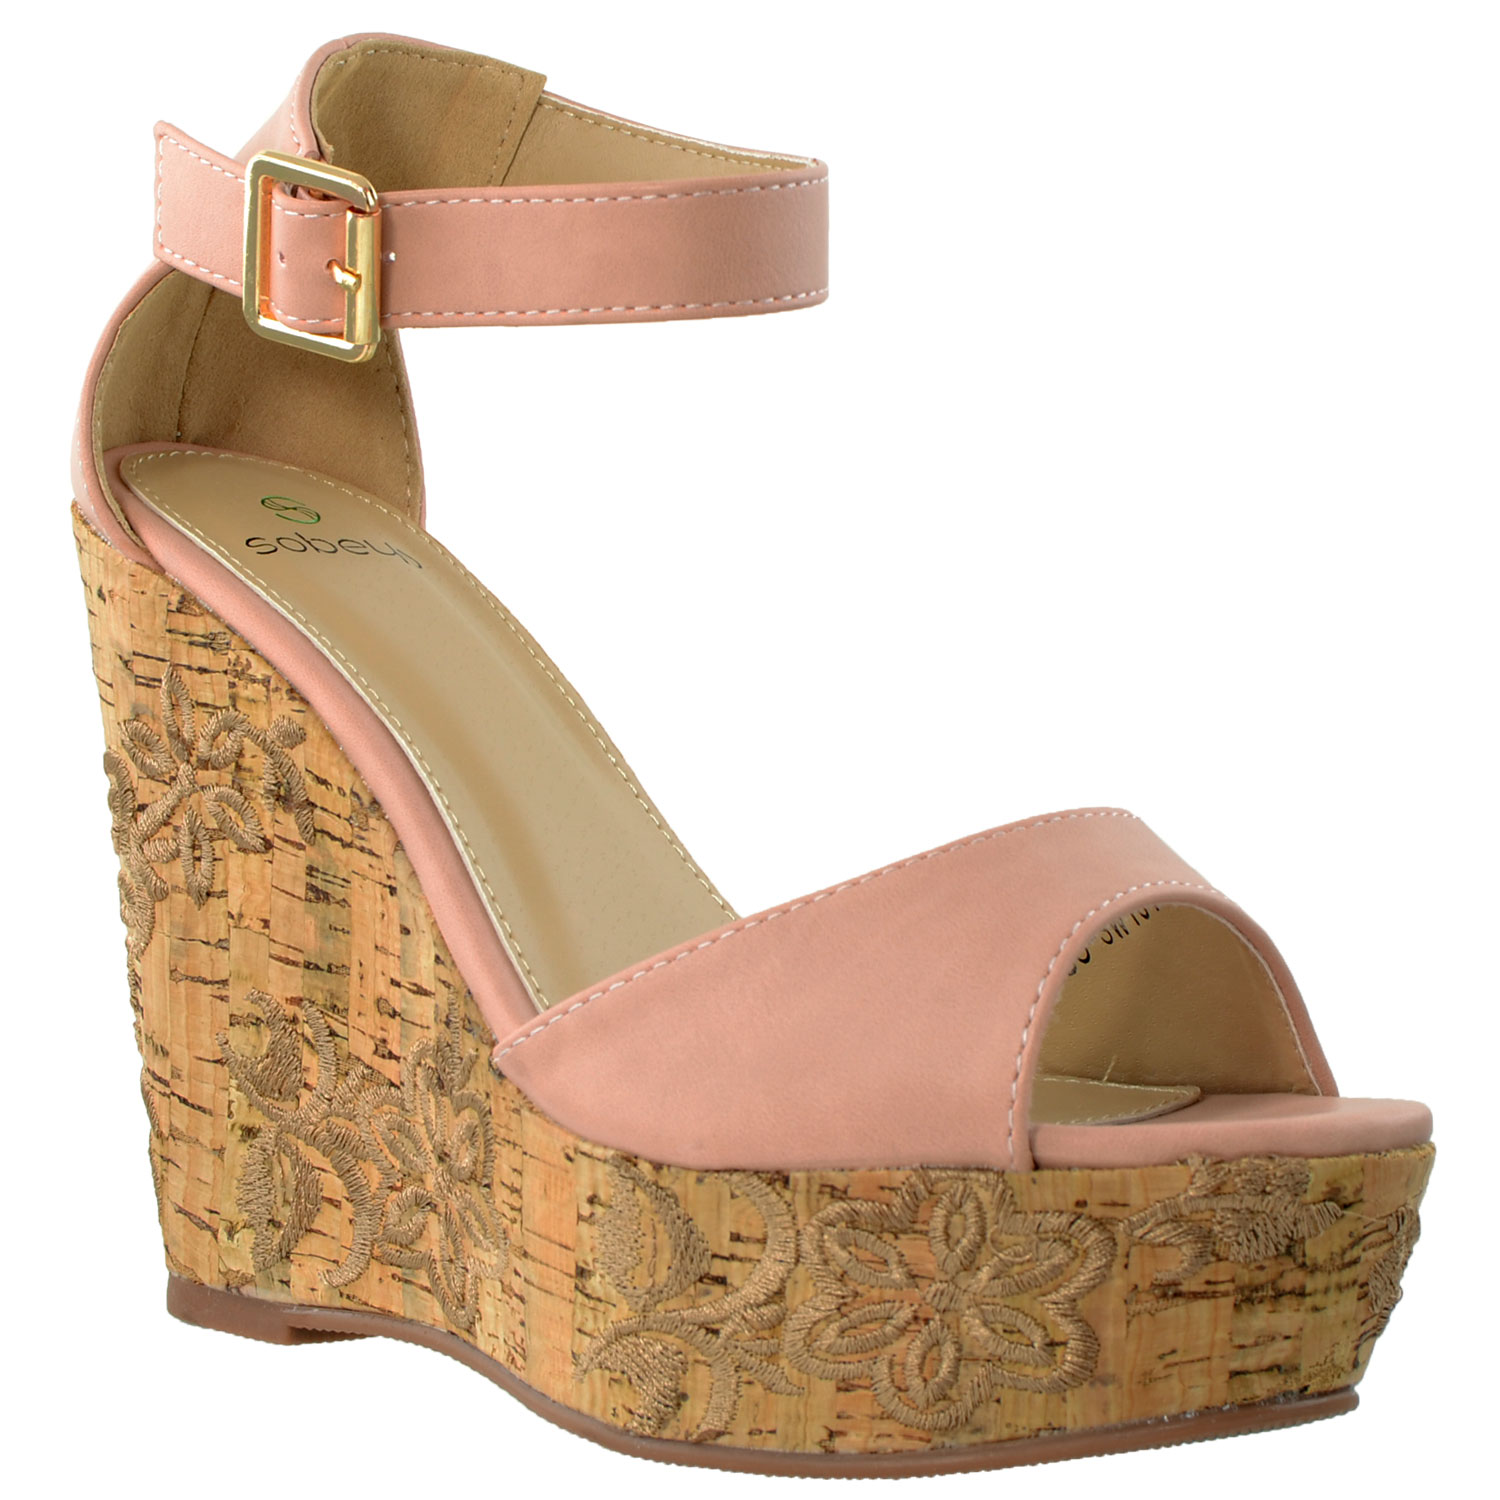 3fa39ebf0f51 Details about Womens Platform Sandals Ankle Strap Embroidered Cork Heel  Wedges PINK